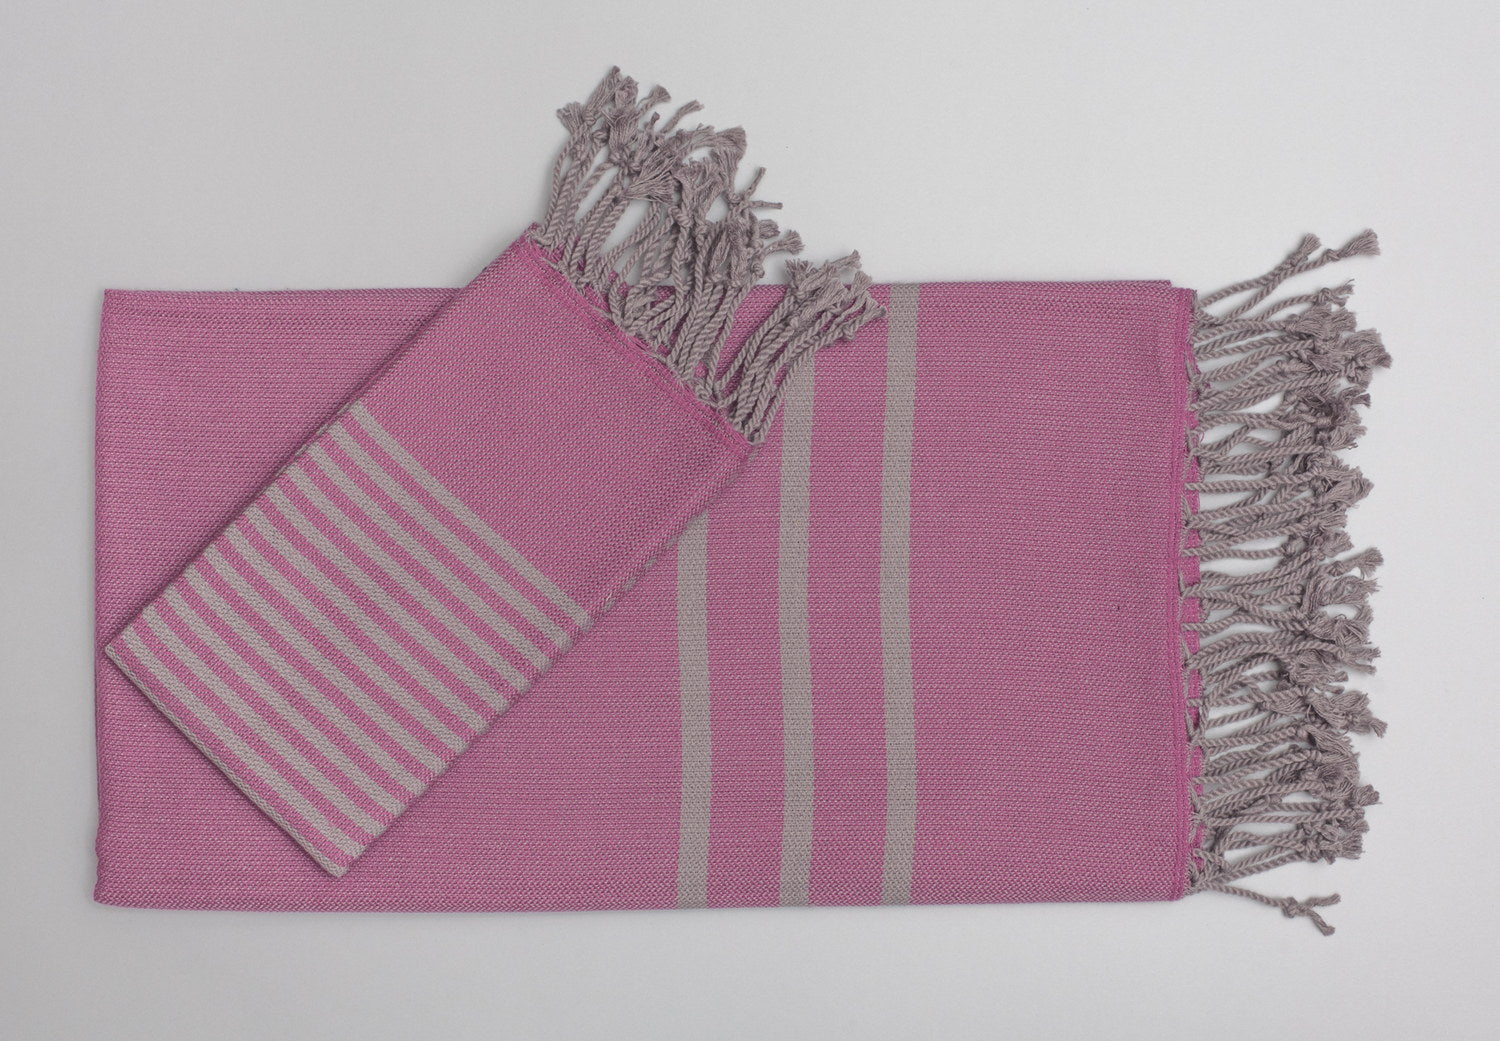 Turkish Hand Towels from Antiochia - fuschia & gray